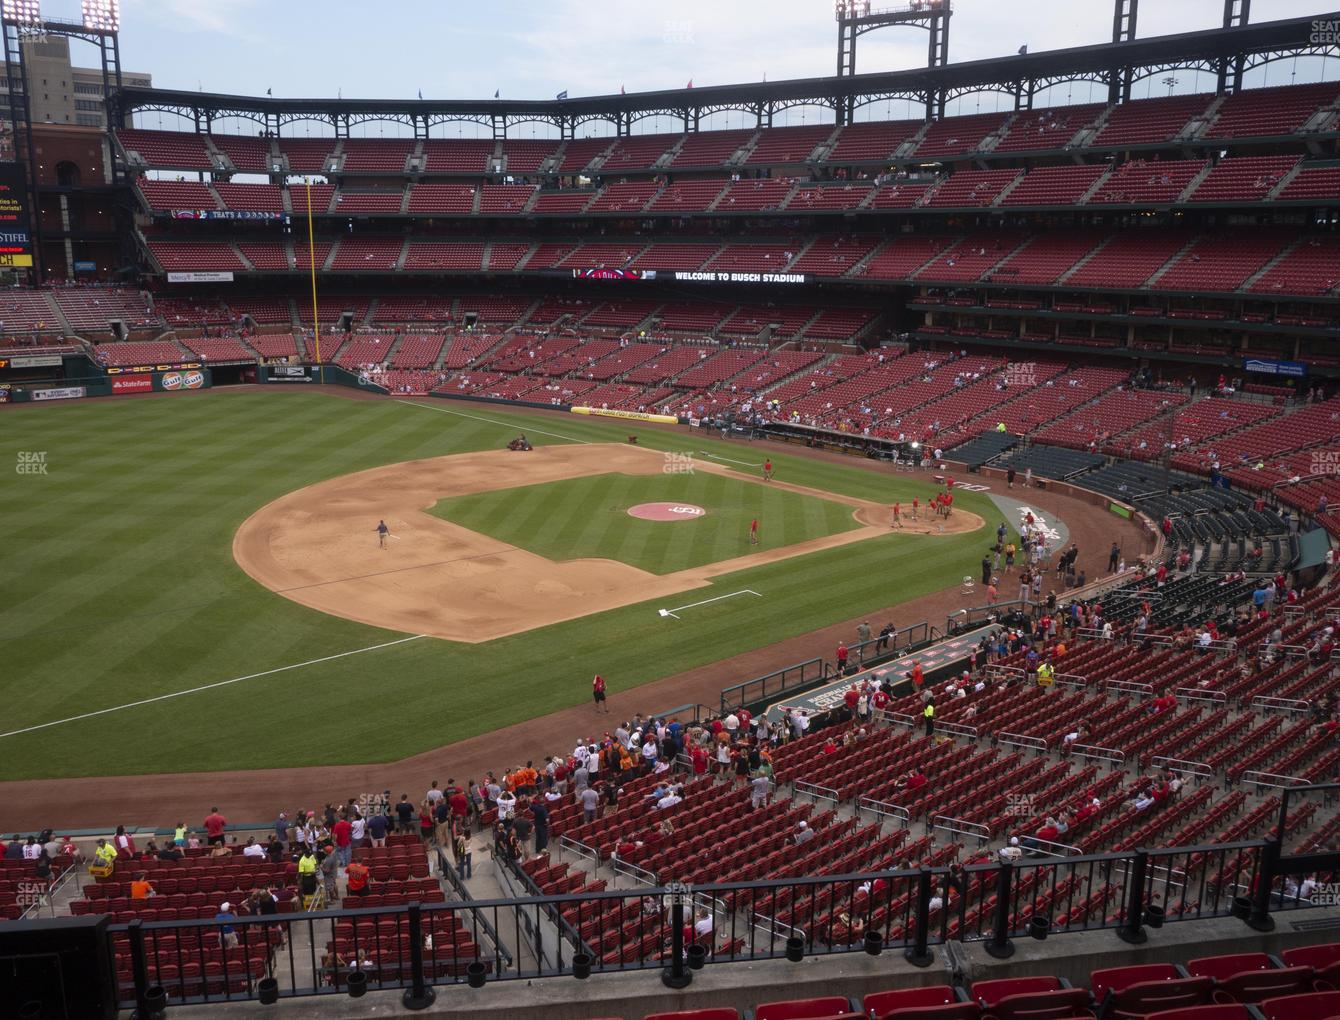 St. Louis Cardinals at Busch Stadium Third Base Loge 261 View